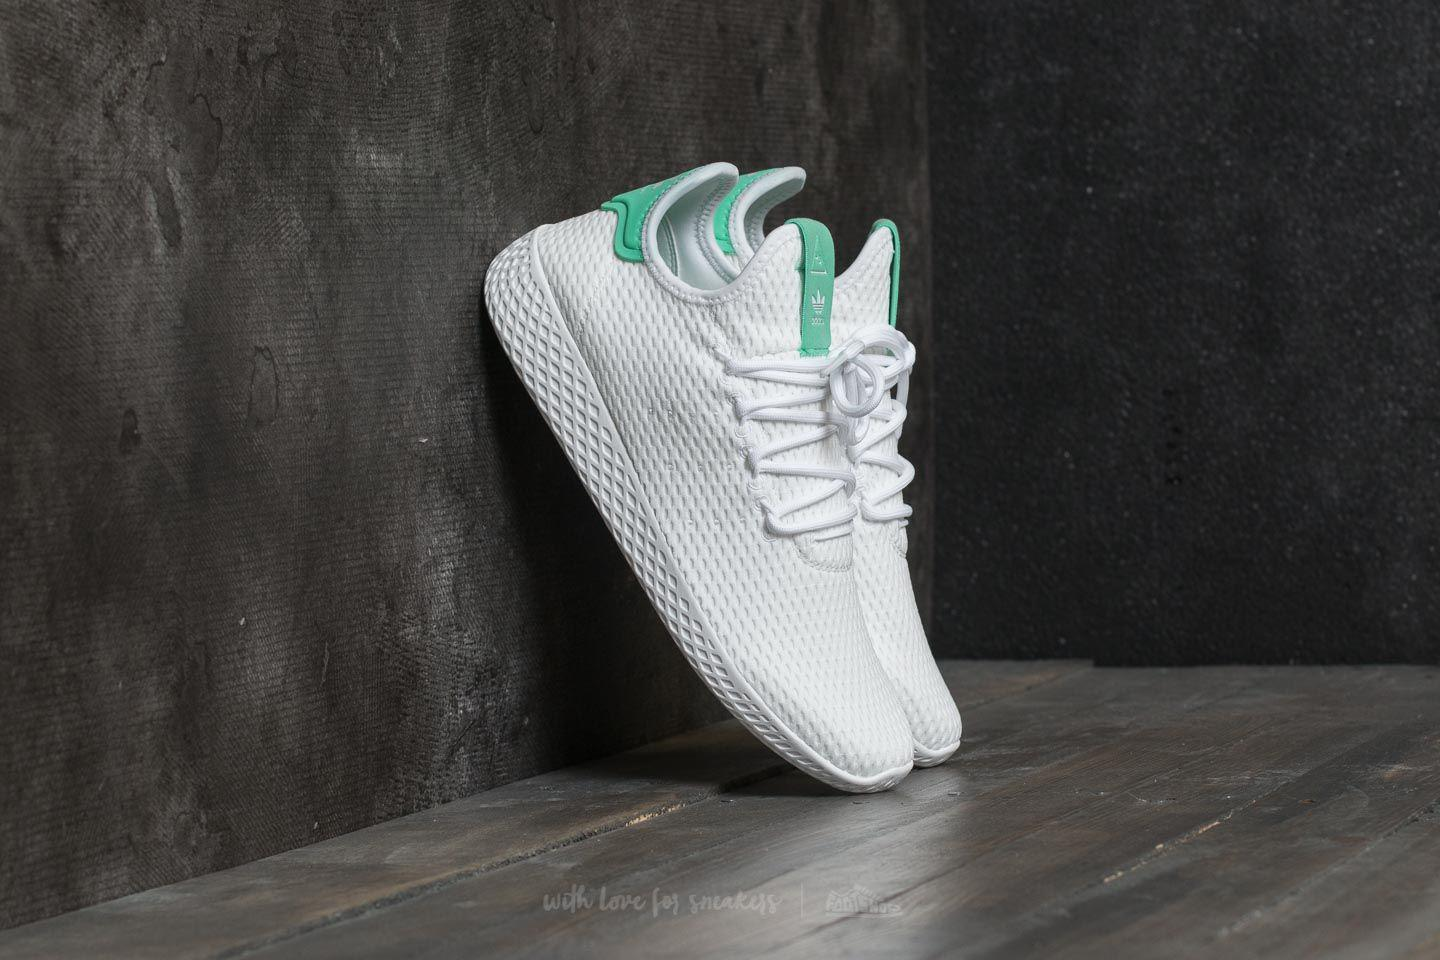 337247b15f939 Lyst - adidas Originals Adidas Pharrell Williams Pw Tennis Hu Ftw ...